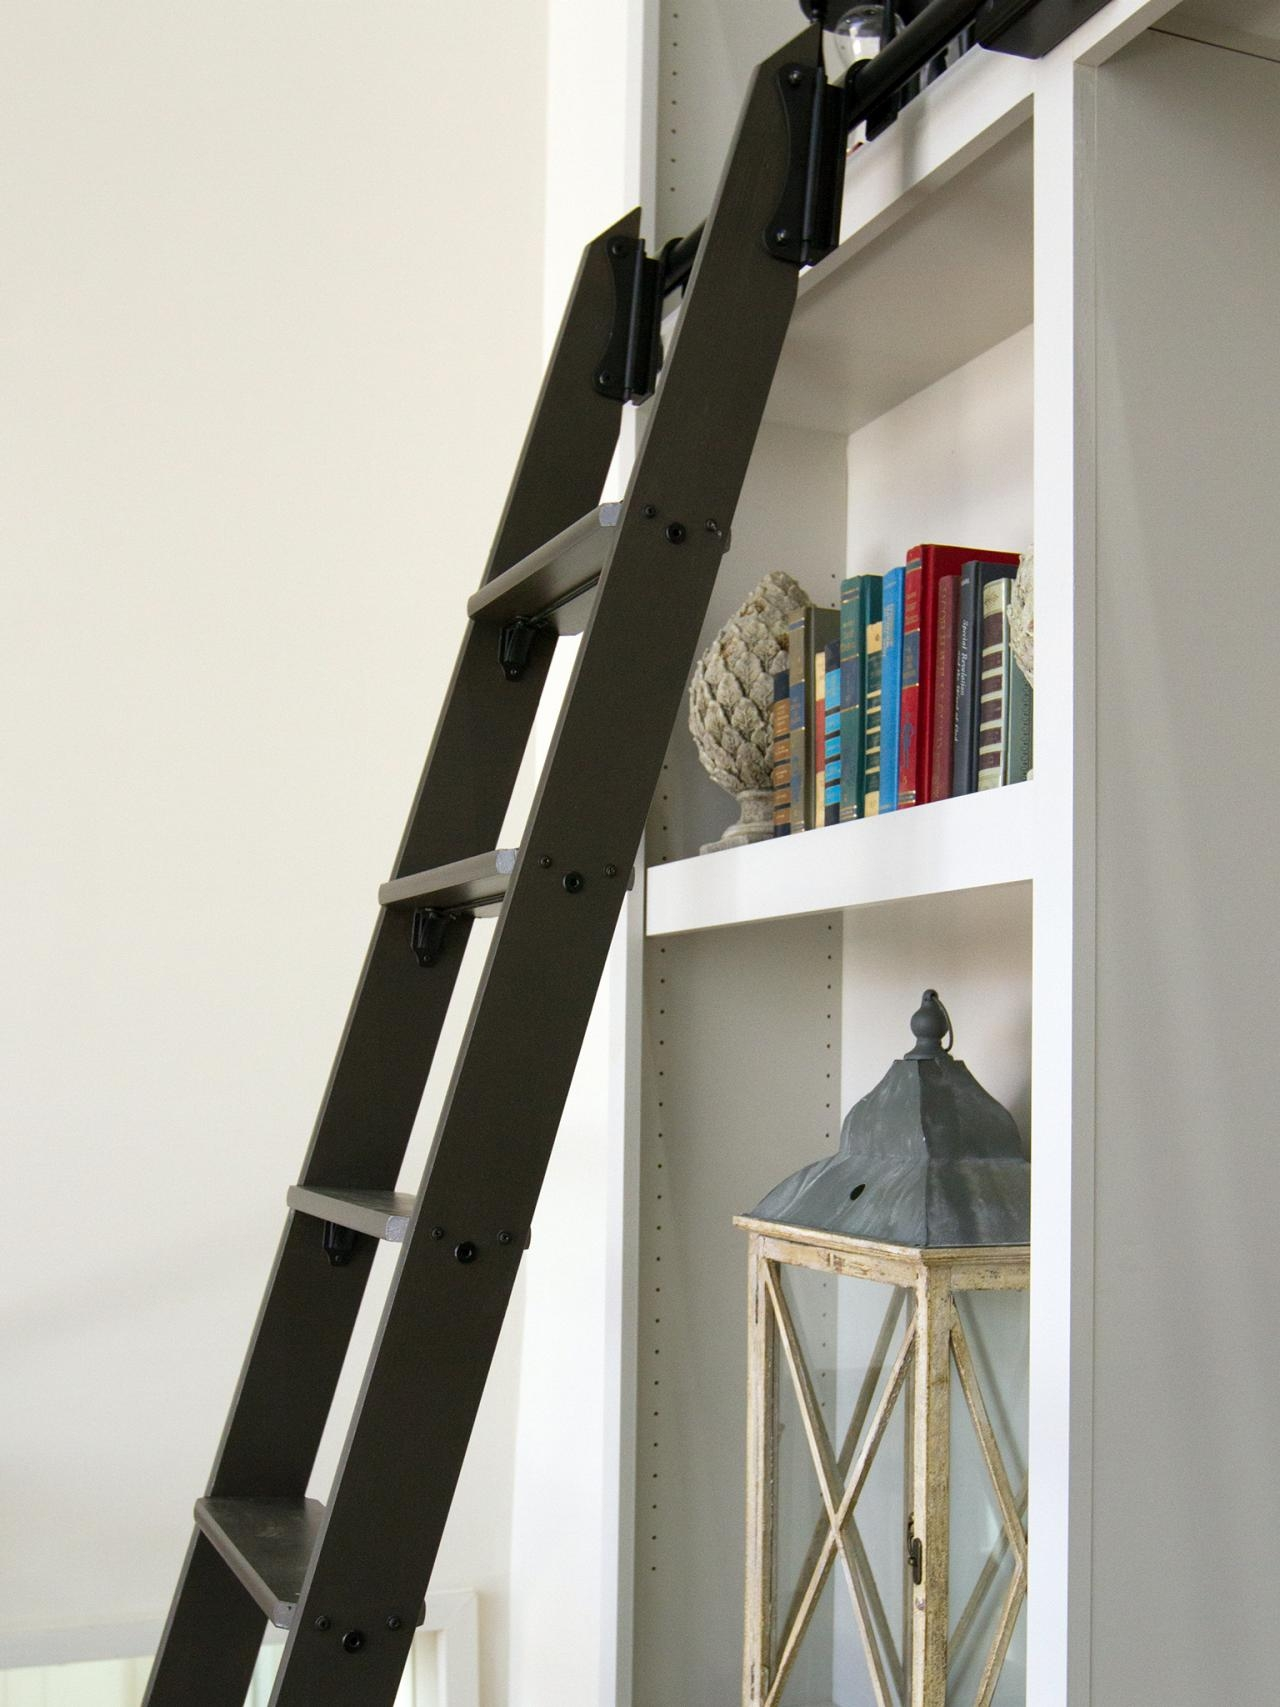 Extraordinary Ladder Closet Roselawnlutheran With Regard To Sliding Library Ladder (#6 of 15)